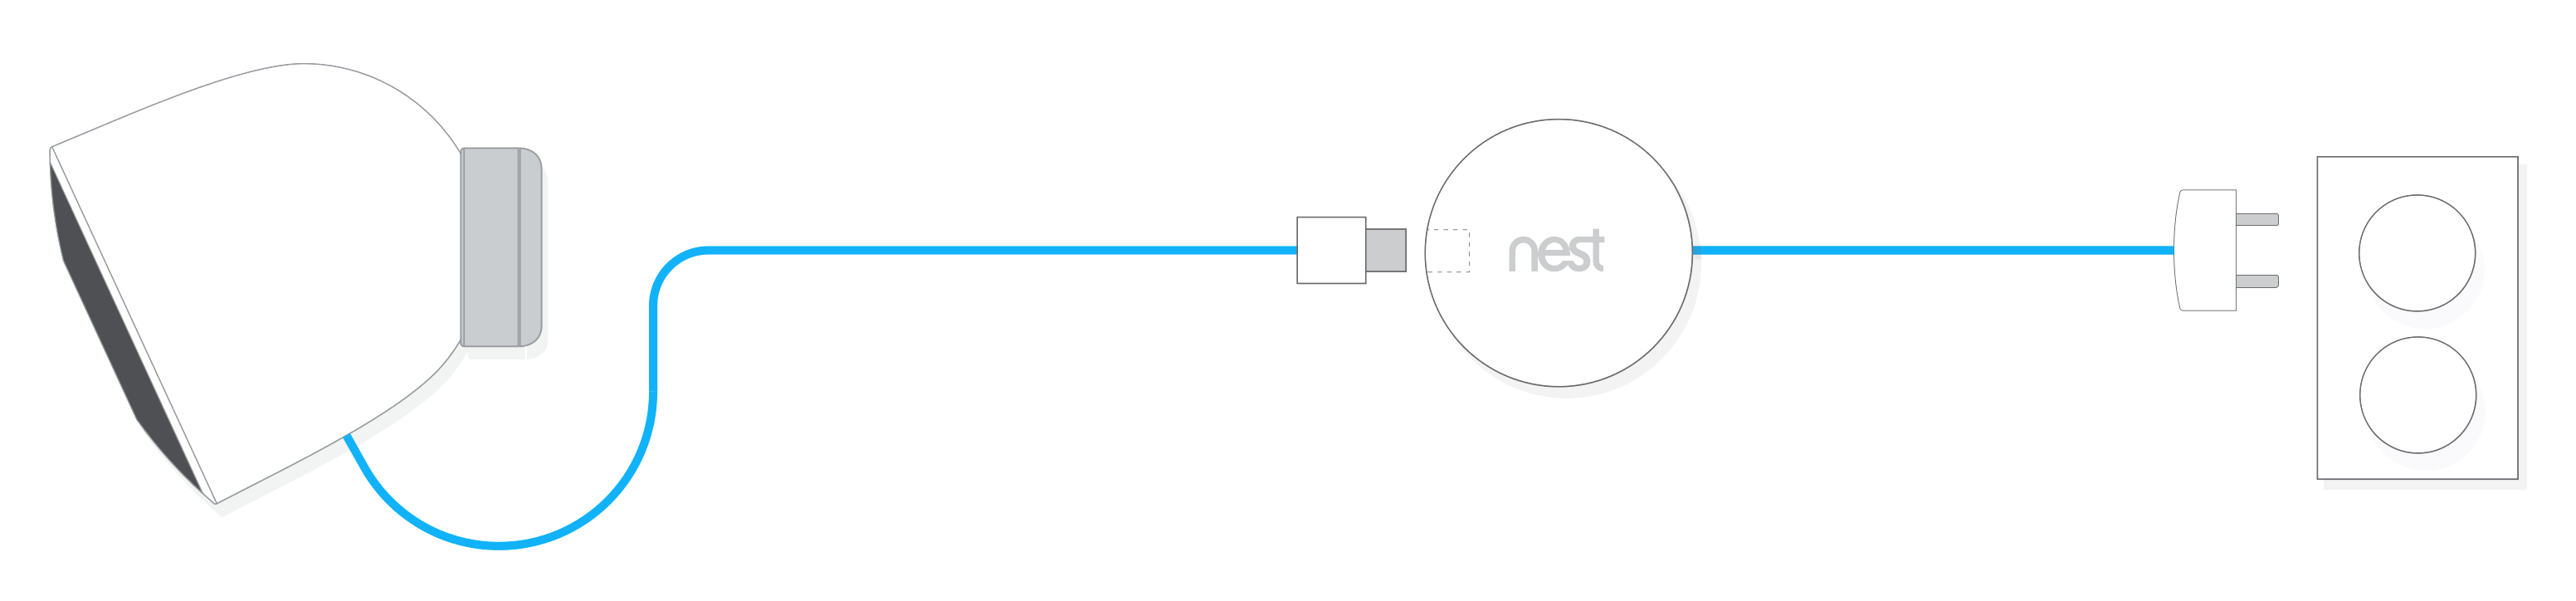 How To Install Your Outdoor Nest Cam - Nest Ring Wiring Diagram